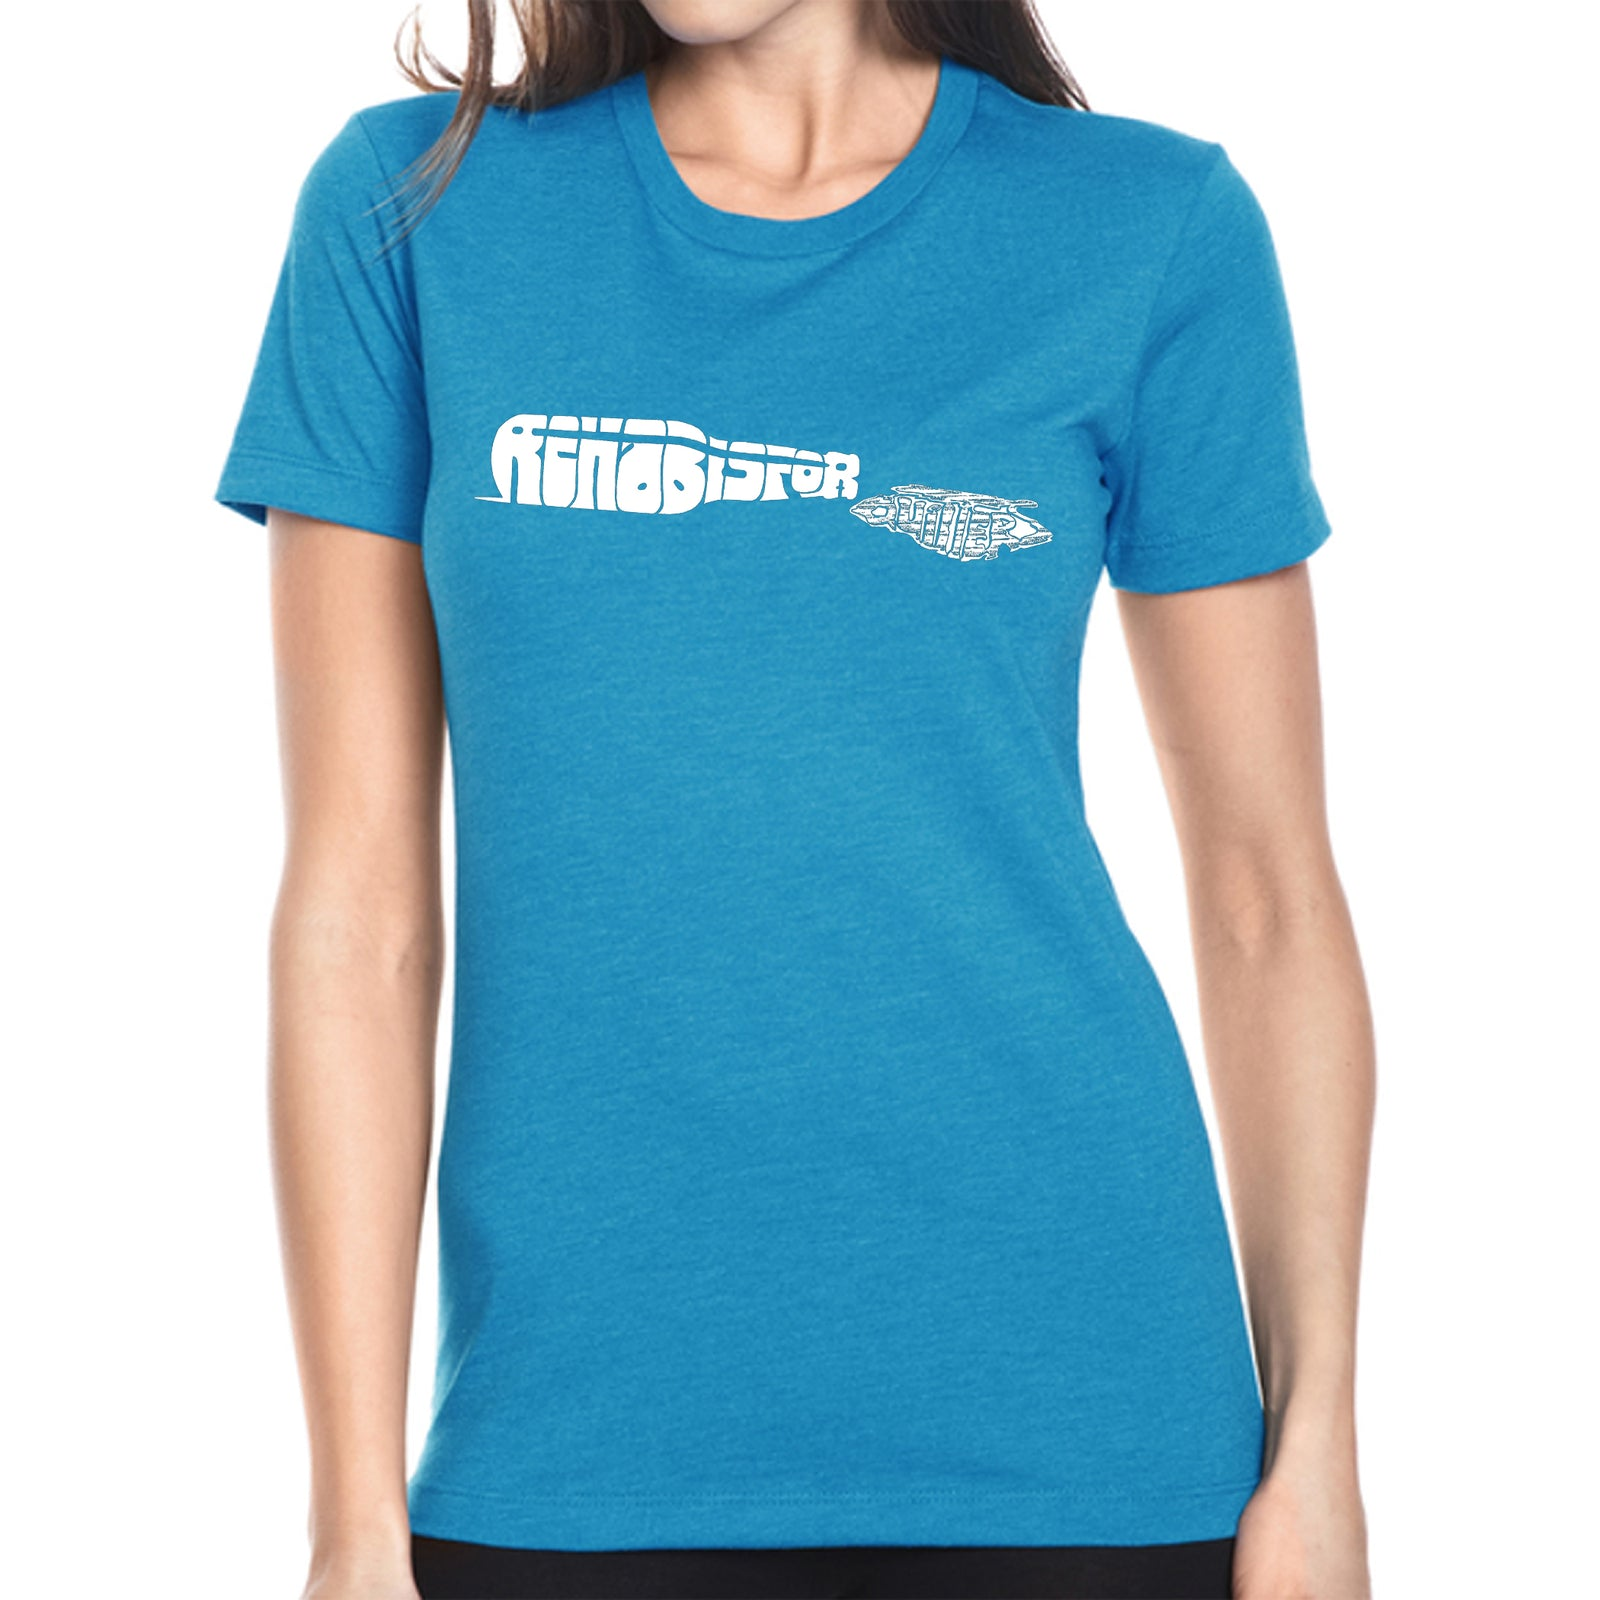 Women's Premium Blend Word Art T-shirt - REHAB IS FOR QUITTERS